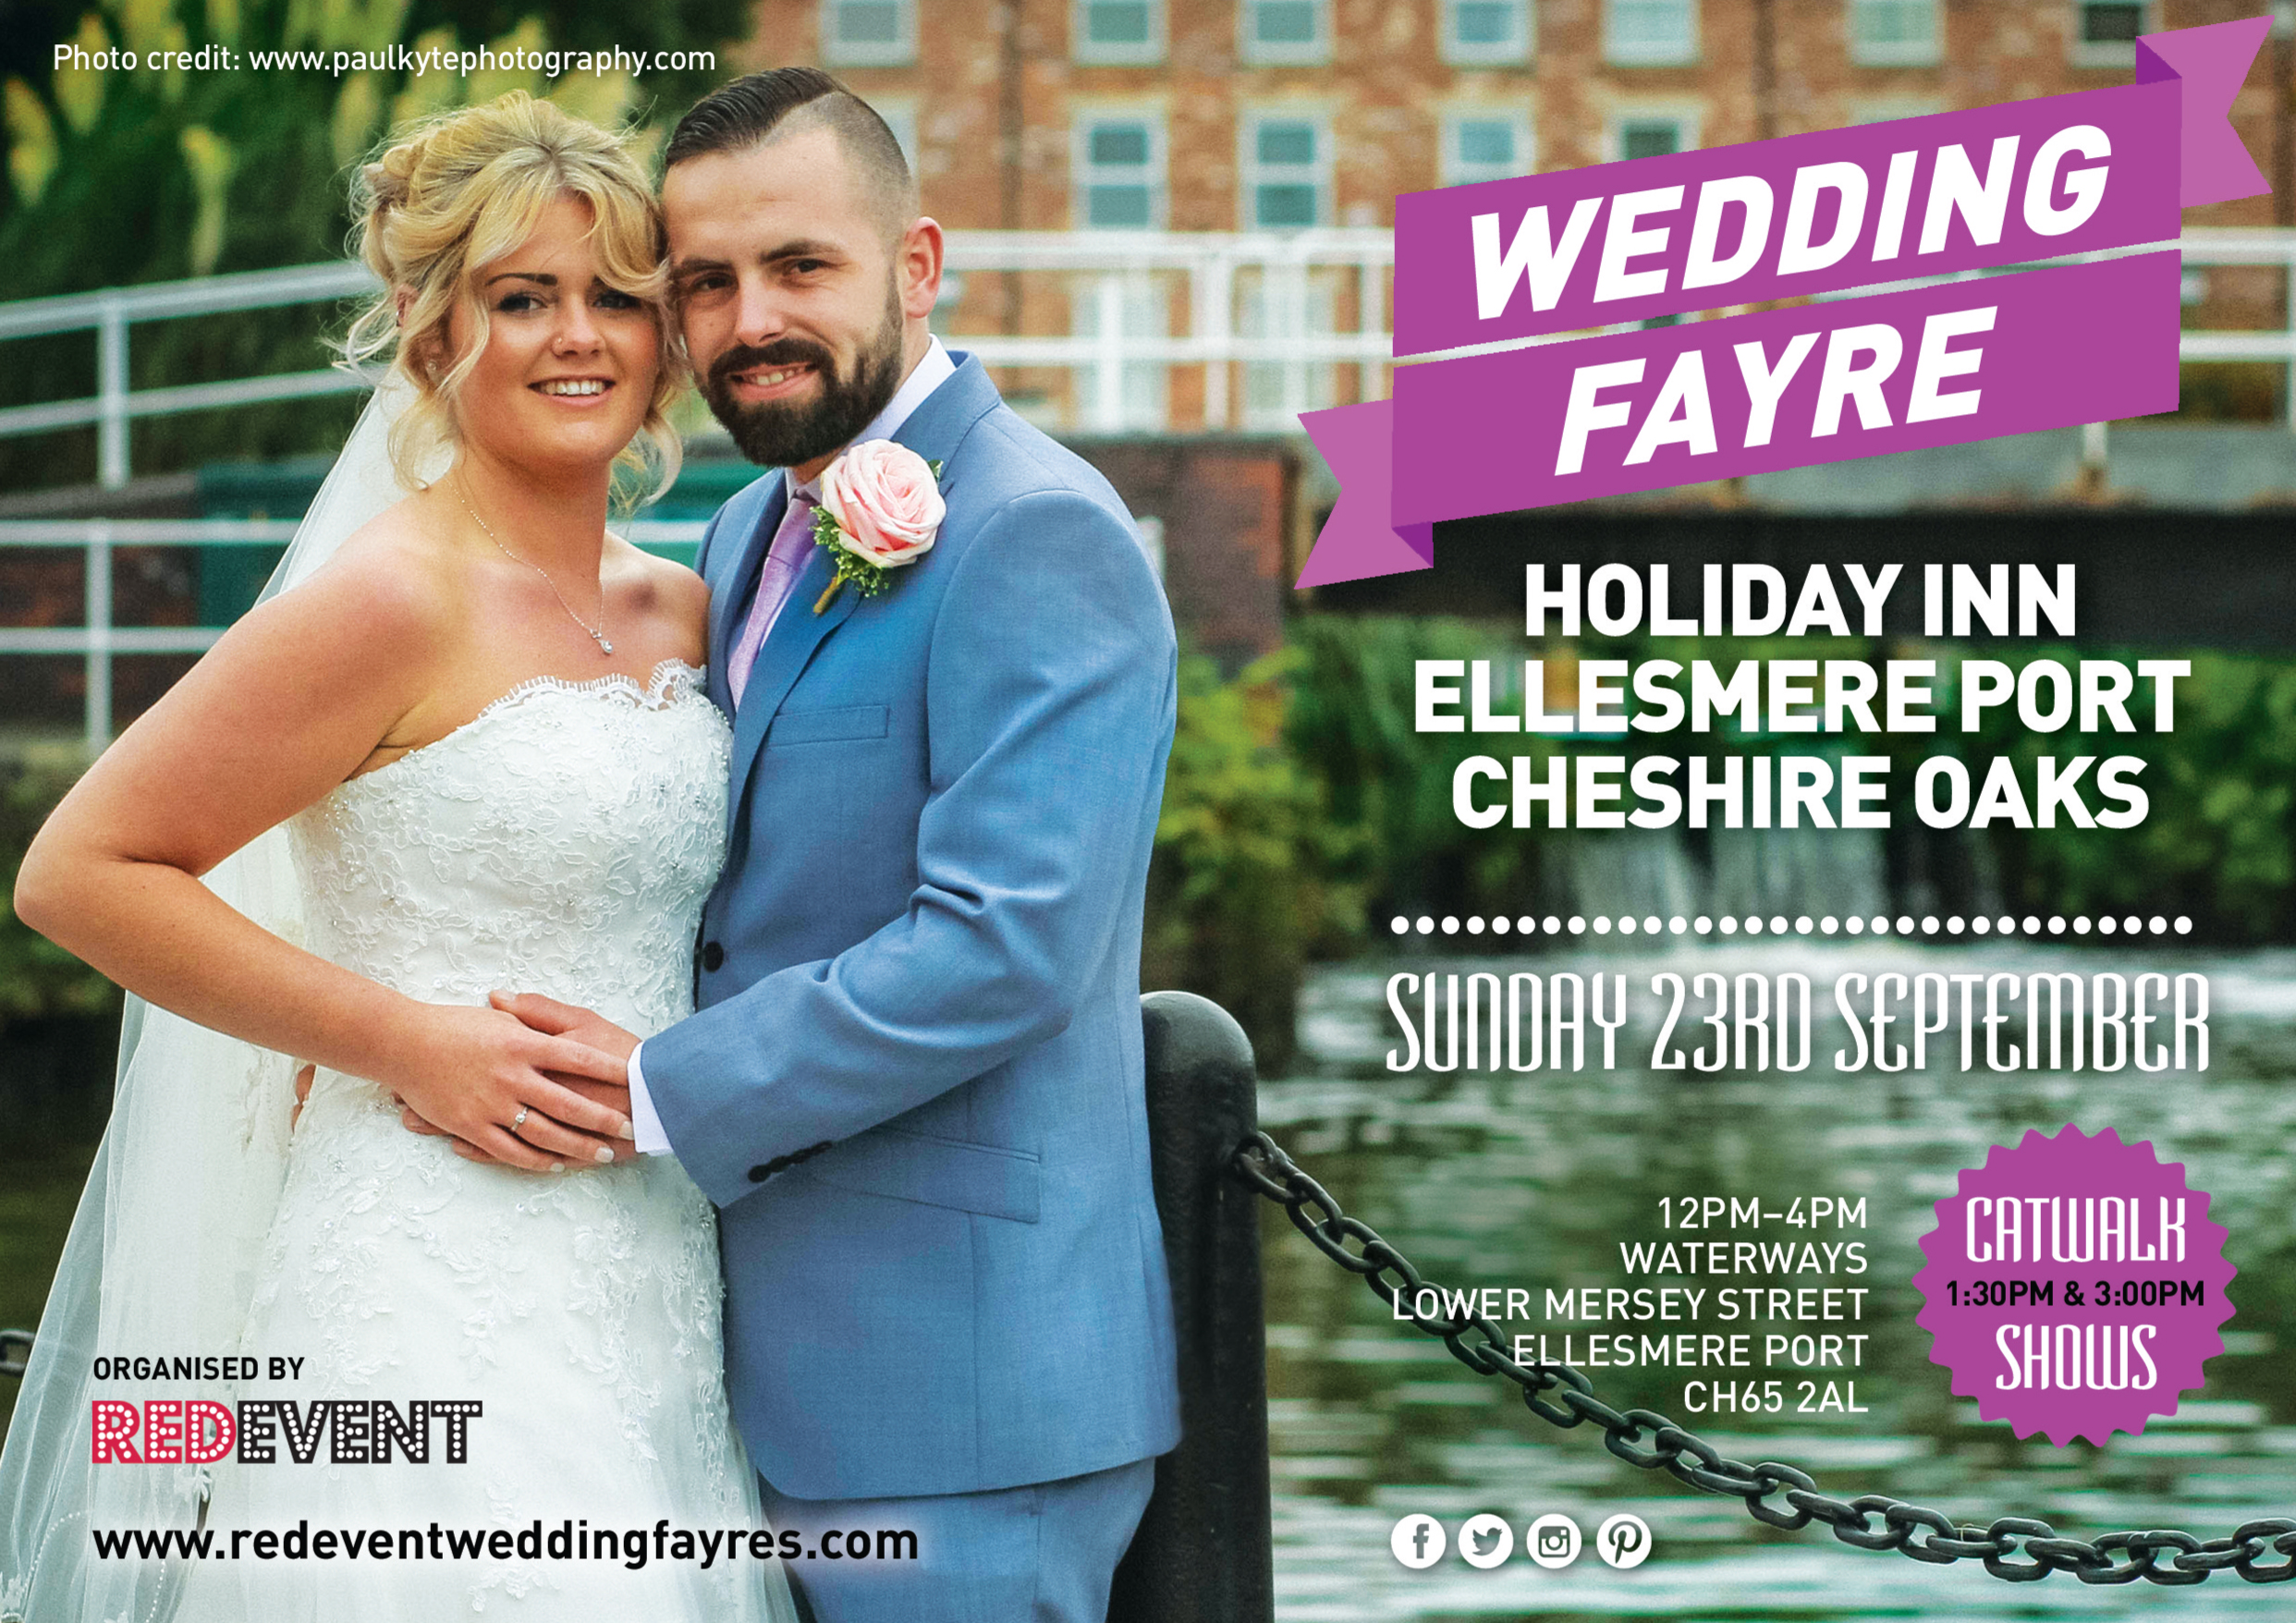 holiday Inn Ellesmere Port Cheshire Oaks Wedding Fayre www.redeventweddingfayres.com